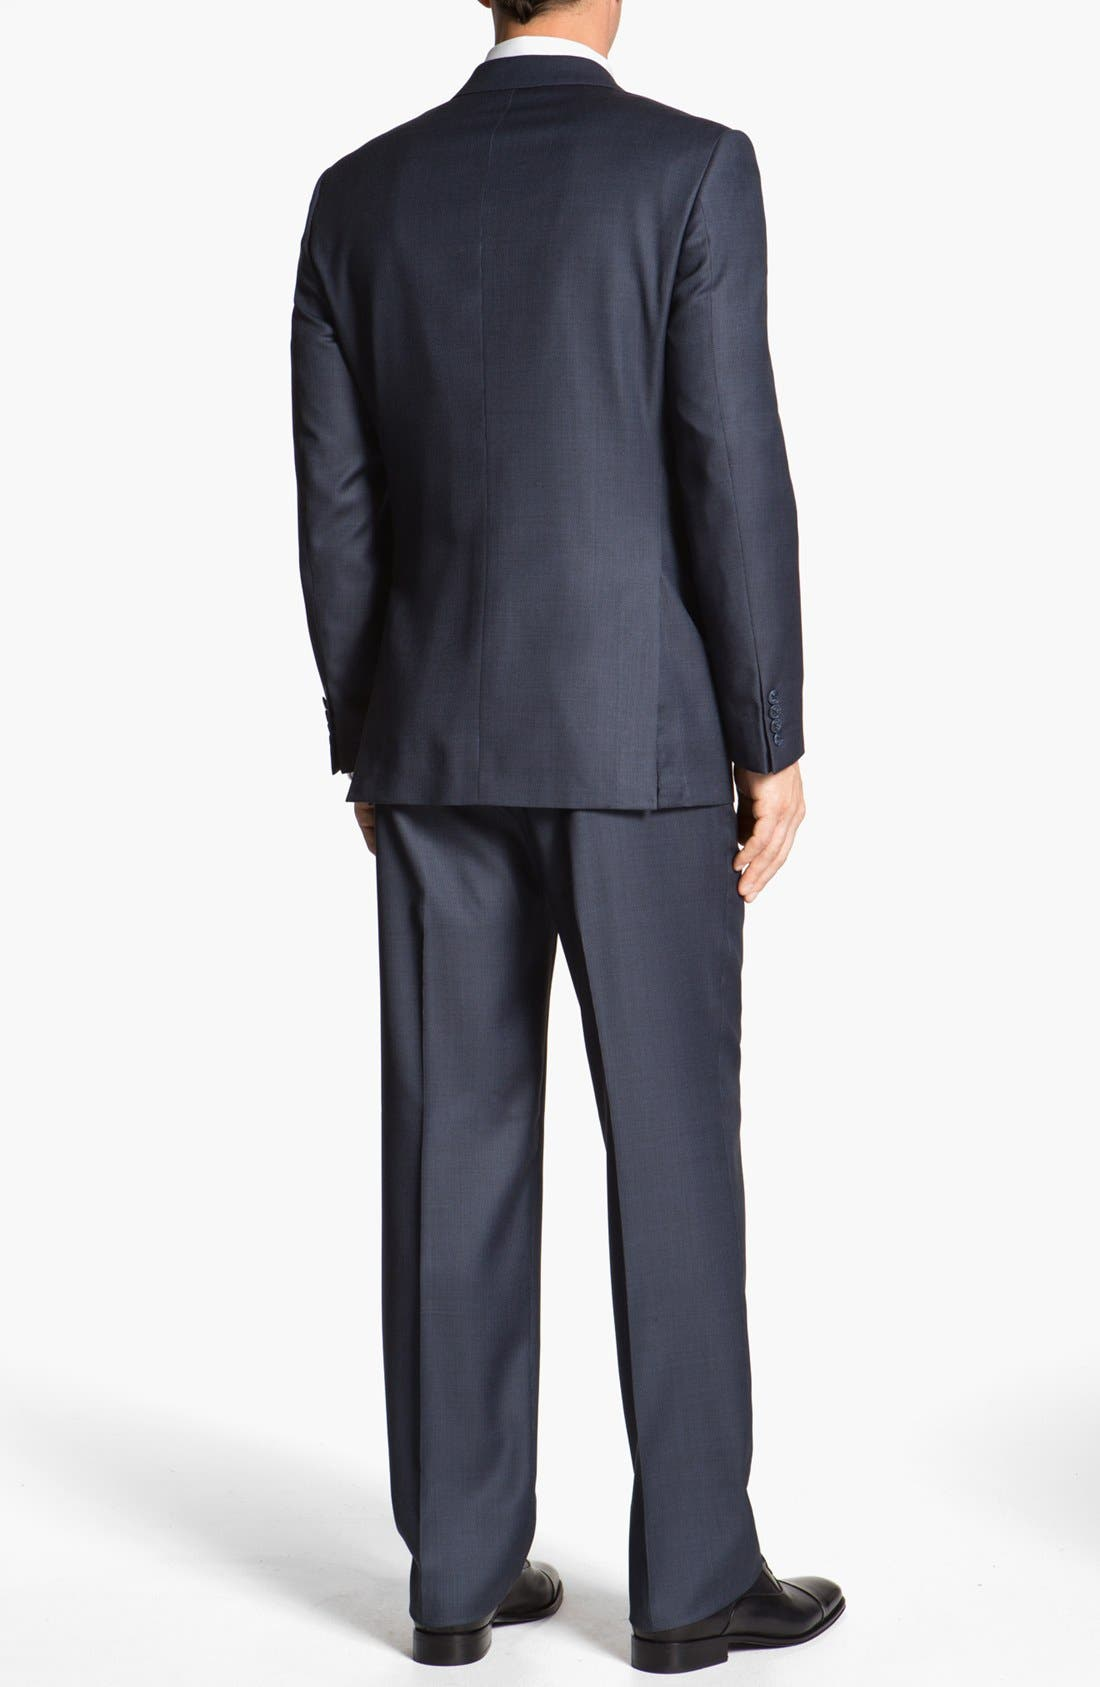 Alternate Image 3  - Joseph Abboud 'Signature Silver' Wool Suit (Online Only)